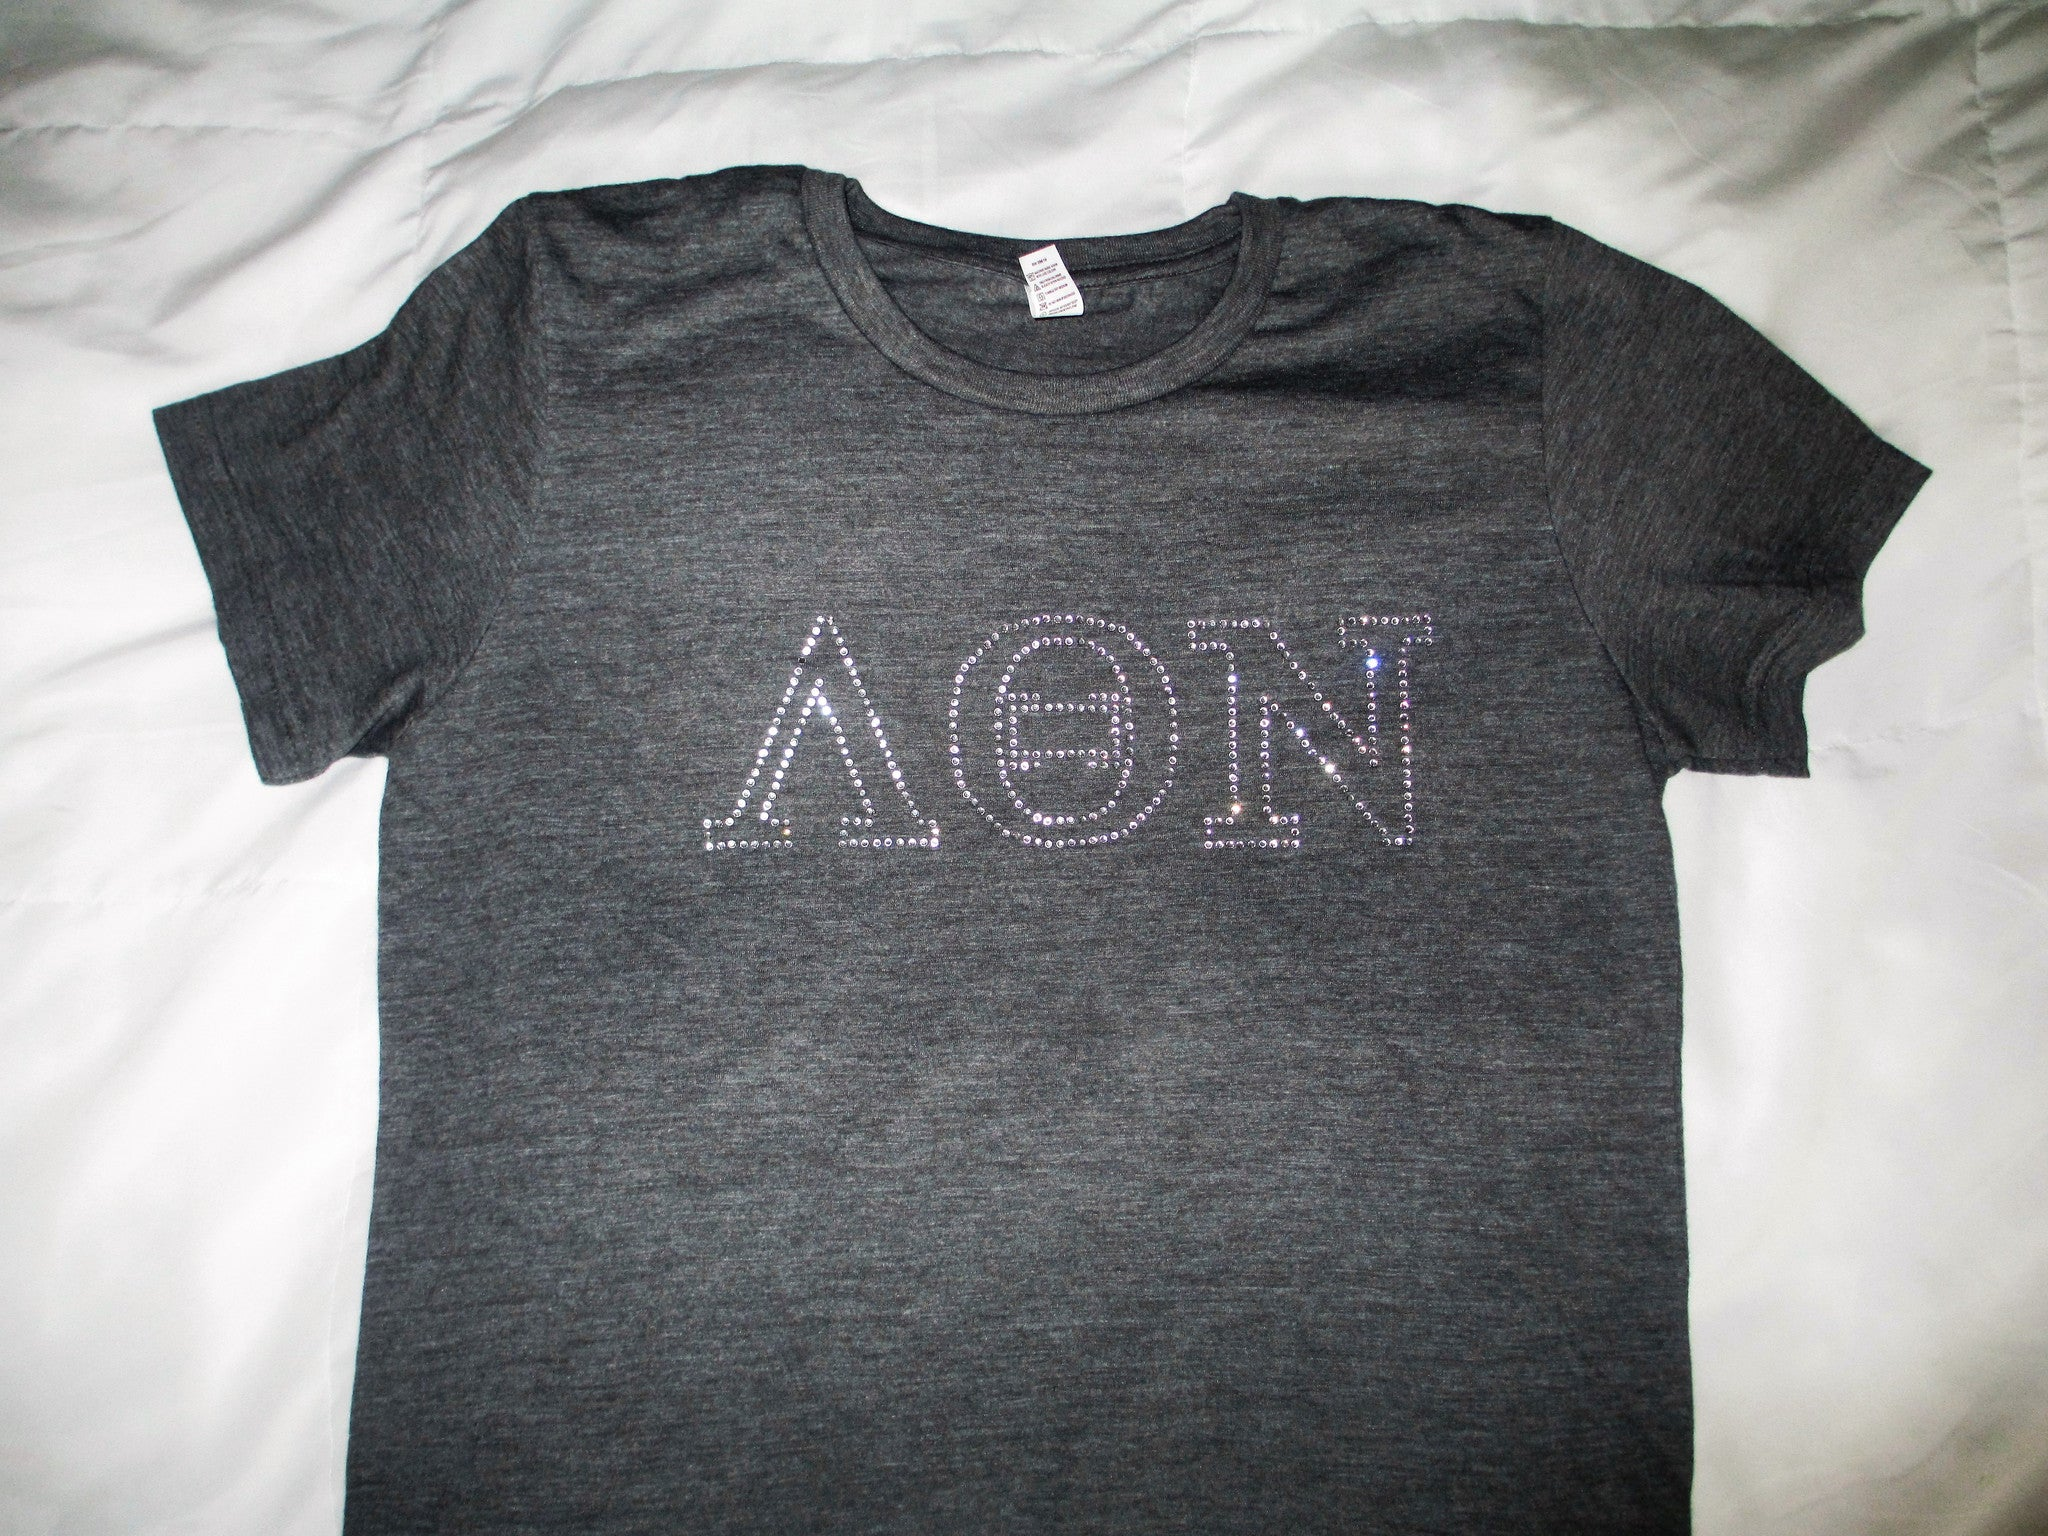 Greek Letter Outline Sorority Shirt - In The Limelight